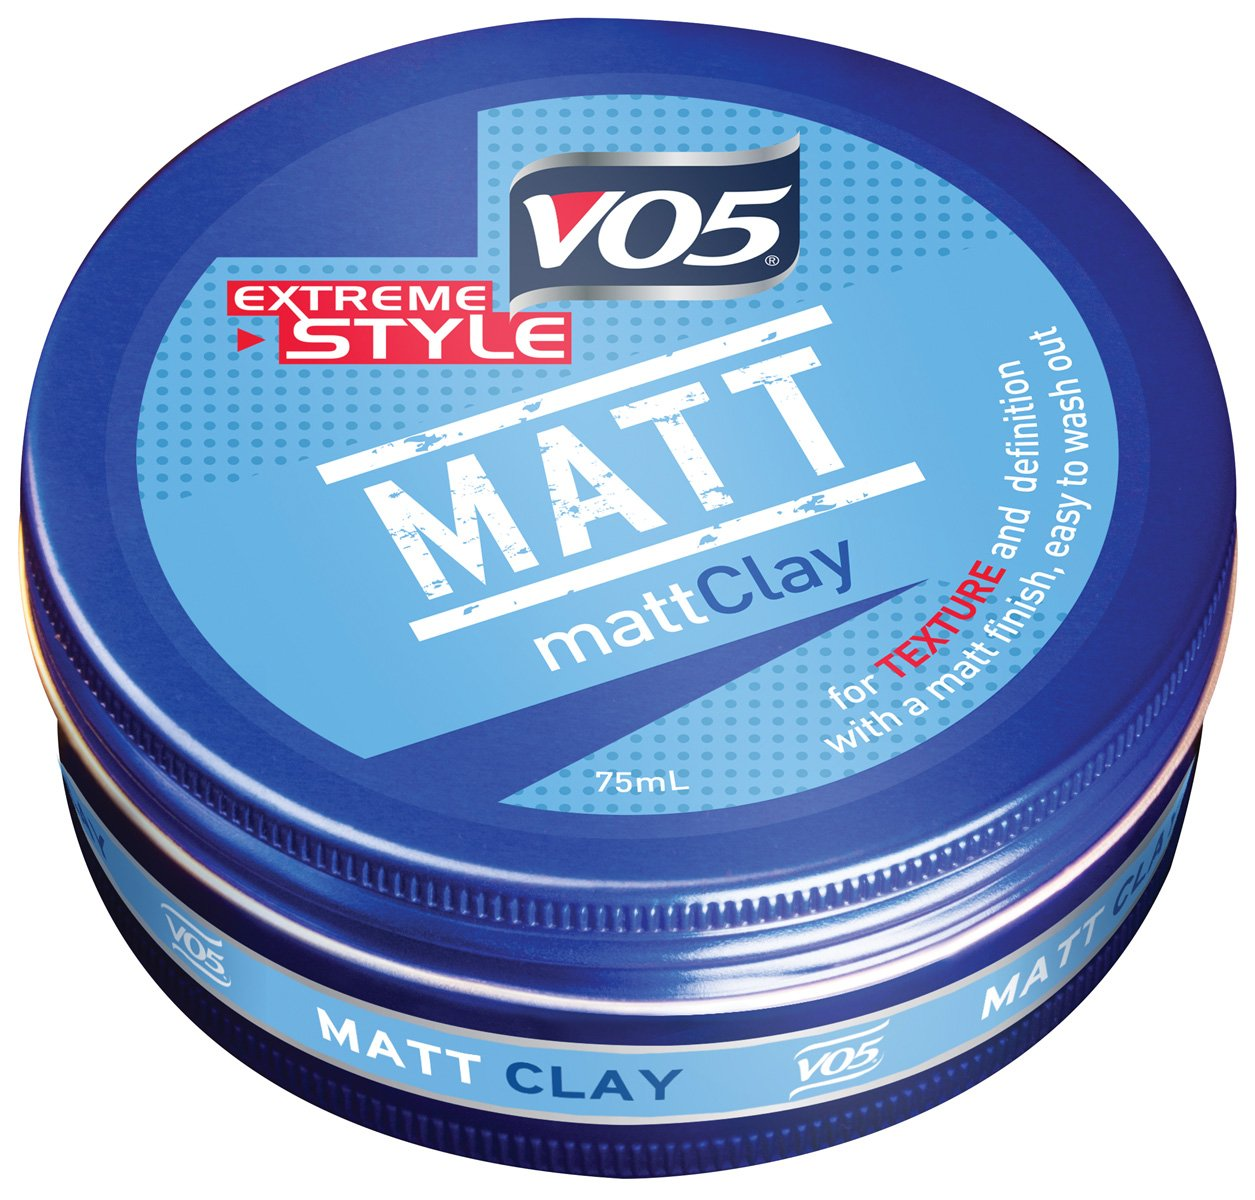 VO5 Extreme Style Matt Clay 75ml Unilever 10005487